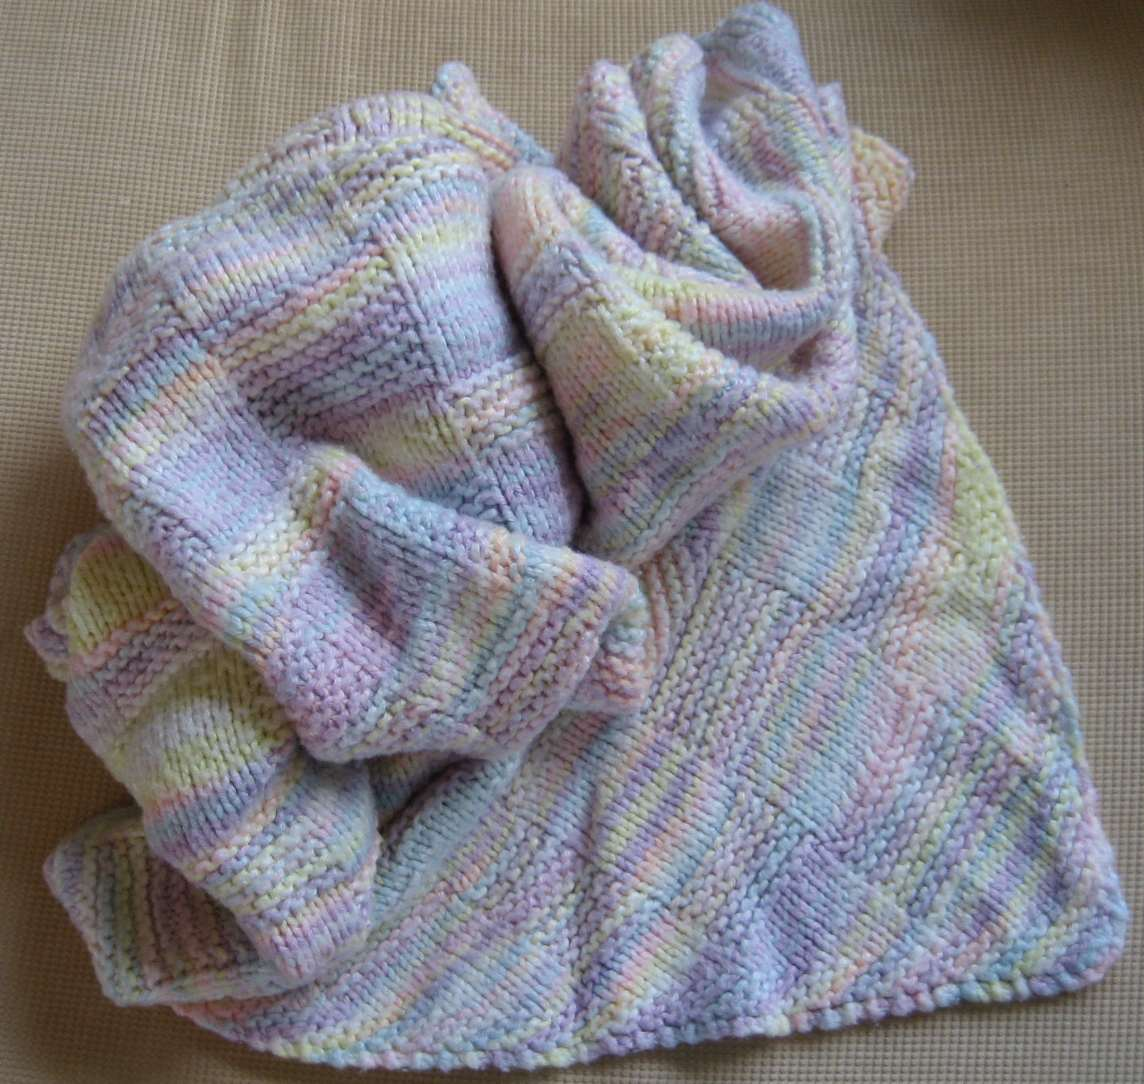 Knitting Pattern For Baby Blanket : knit baby blanket-Knitting Gallery